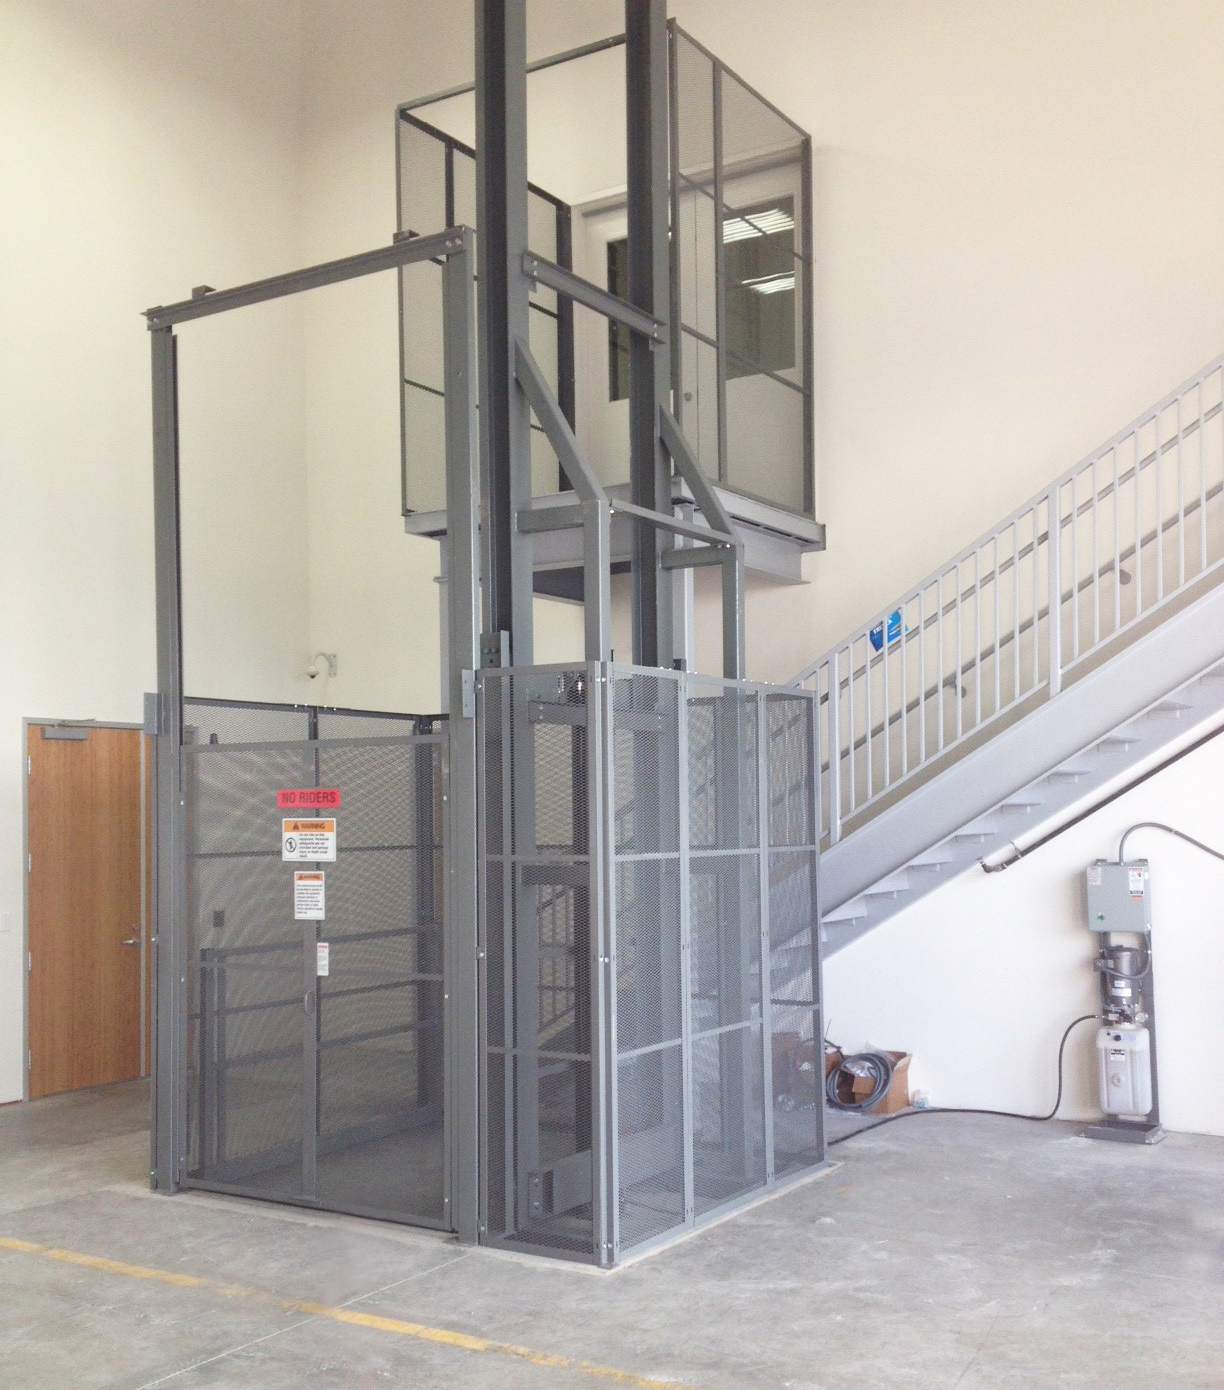 Hydraulic Material Lift : Hydraulic vrcs material lift wildeck